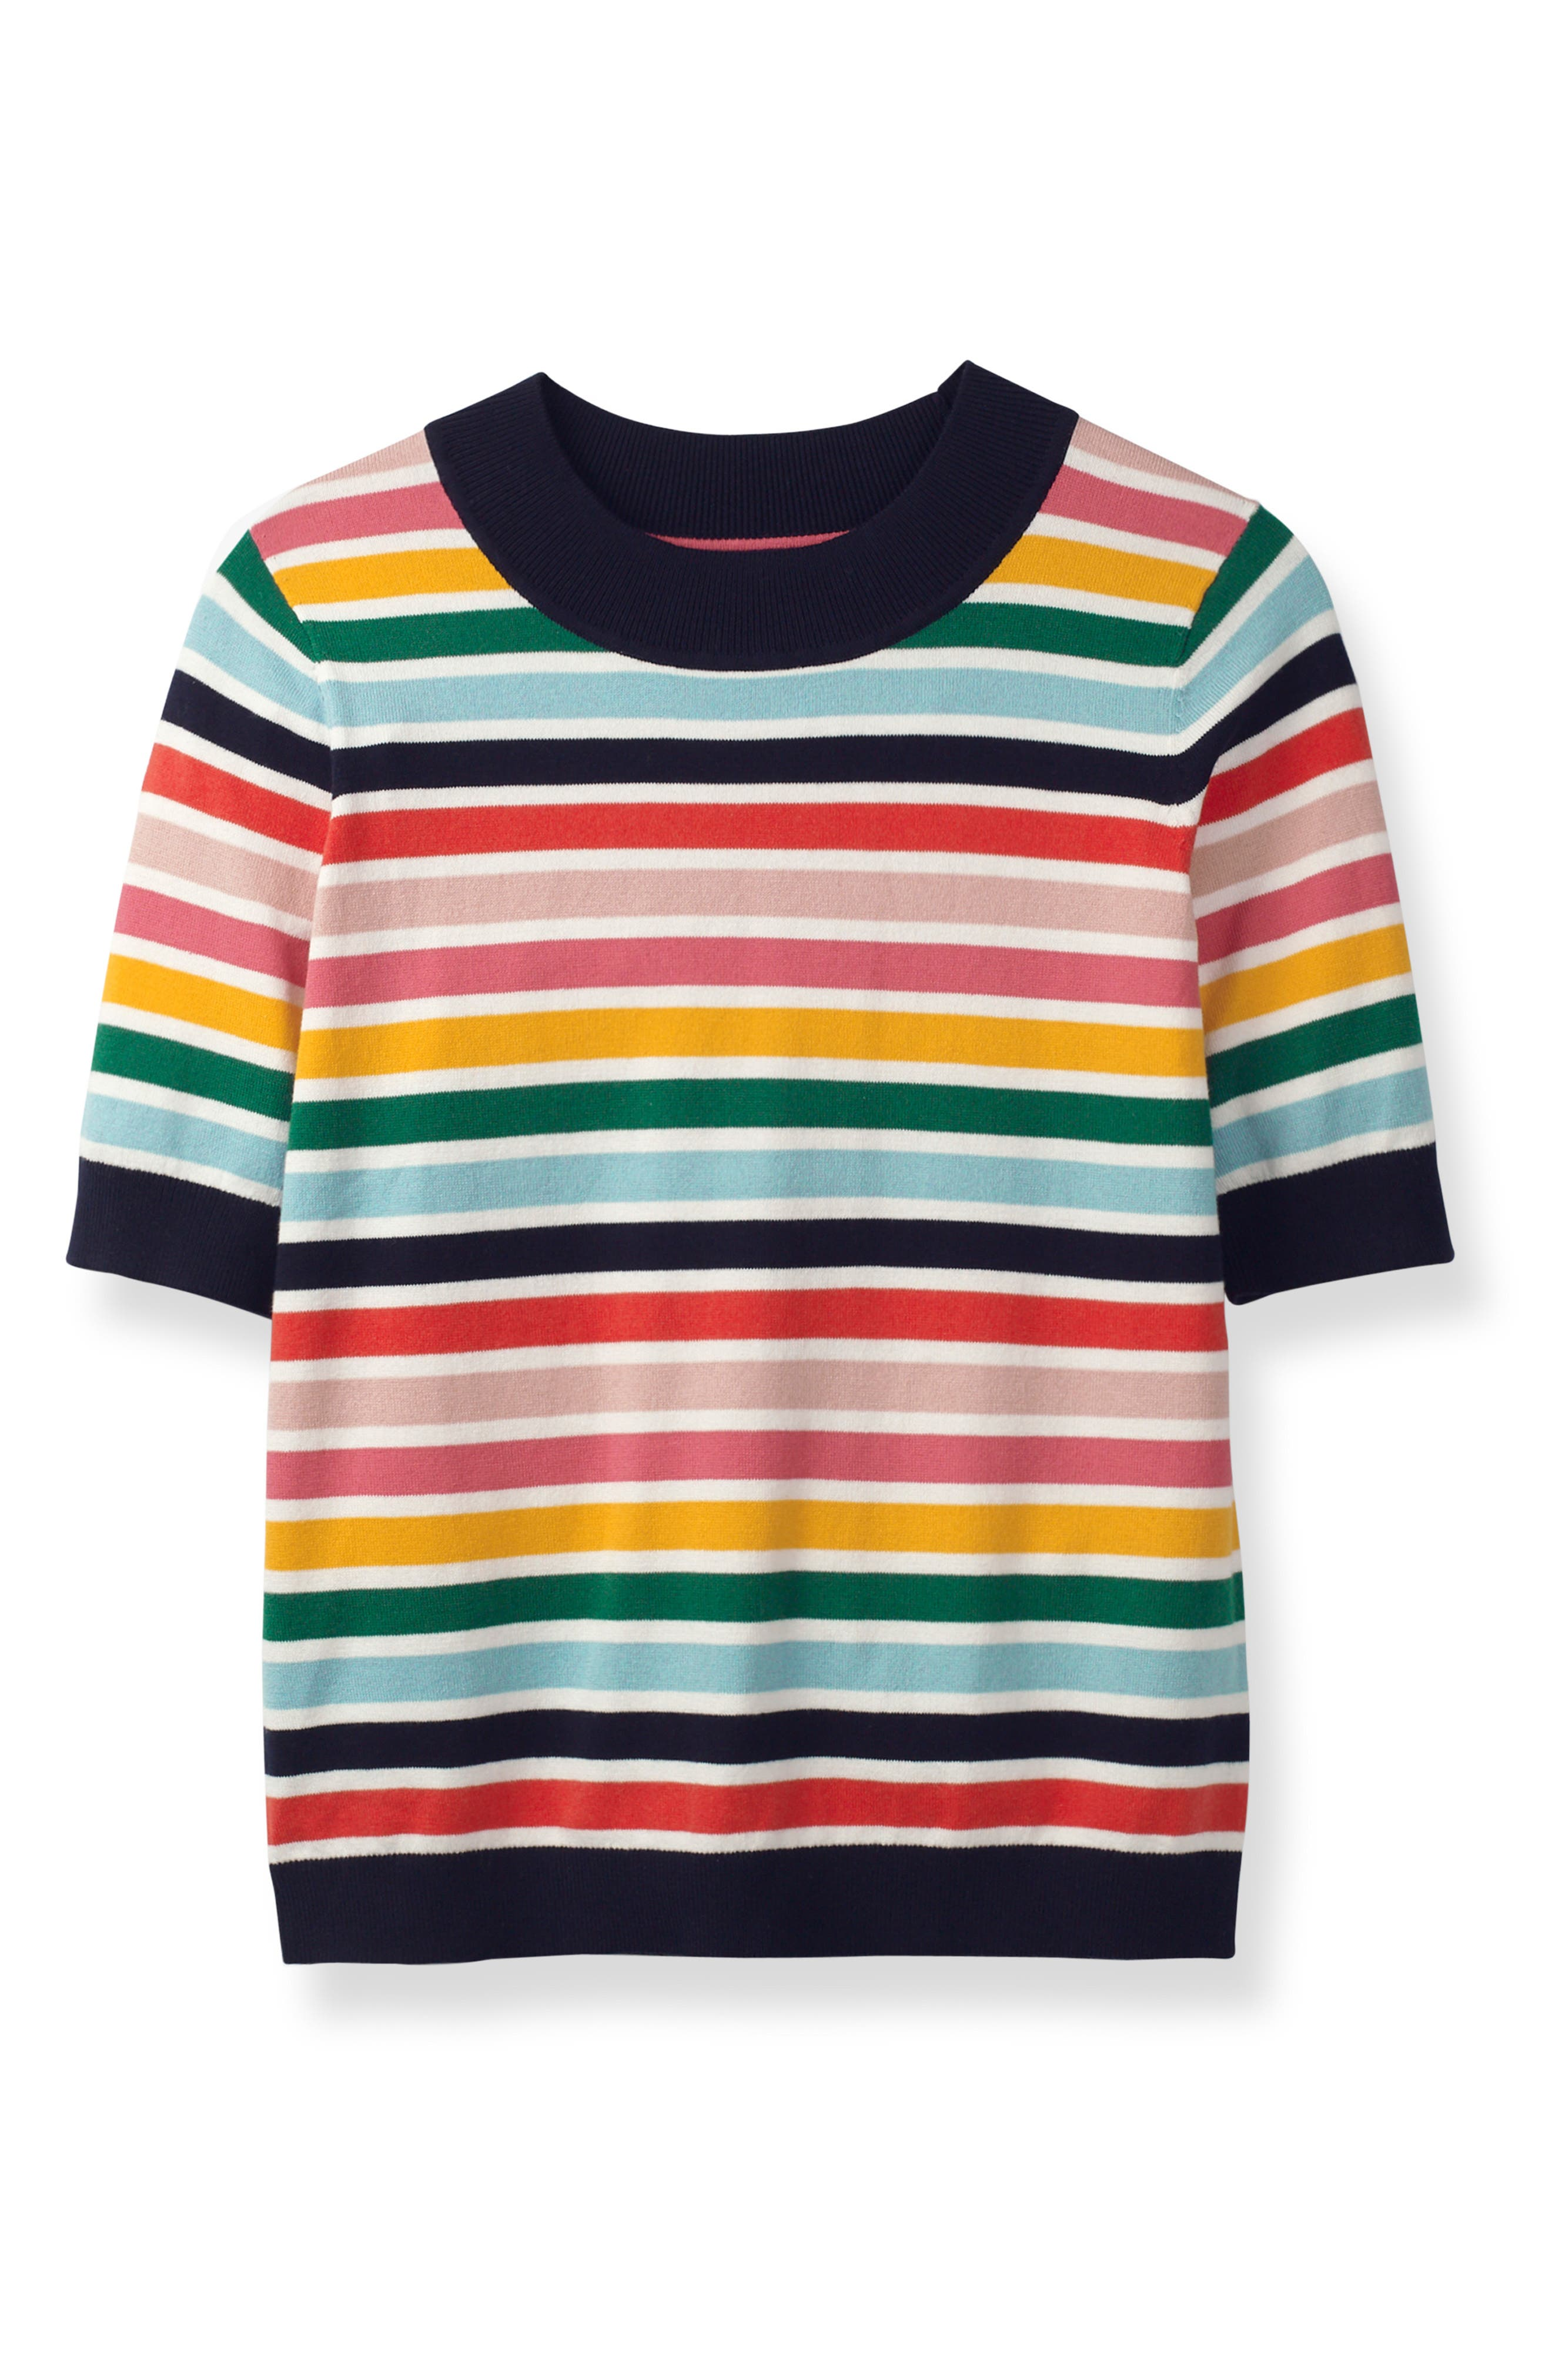 BODEN, Multicolor Knit Tee, Alternate thumbnail 4, color, MULTI STRIPE